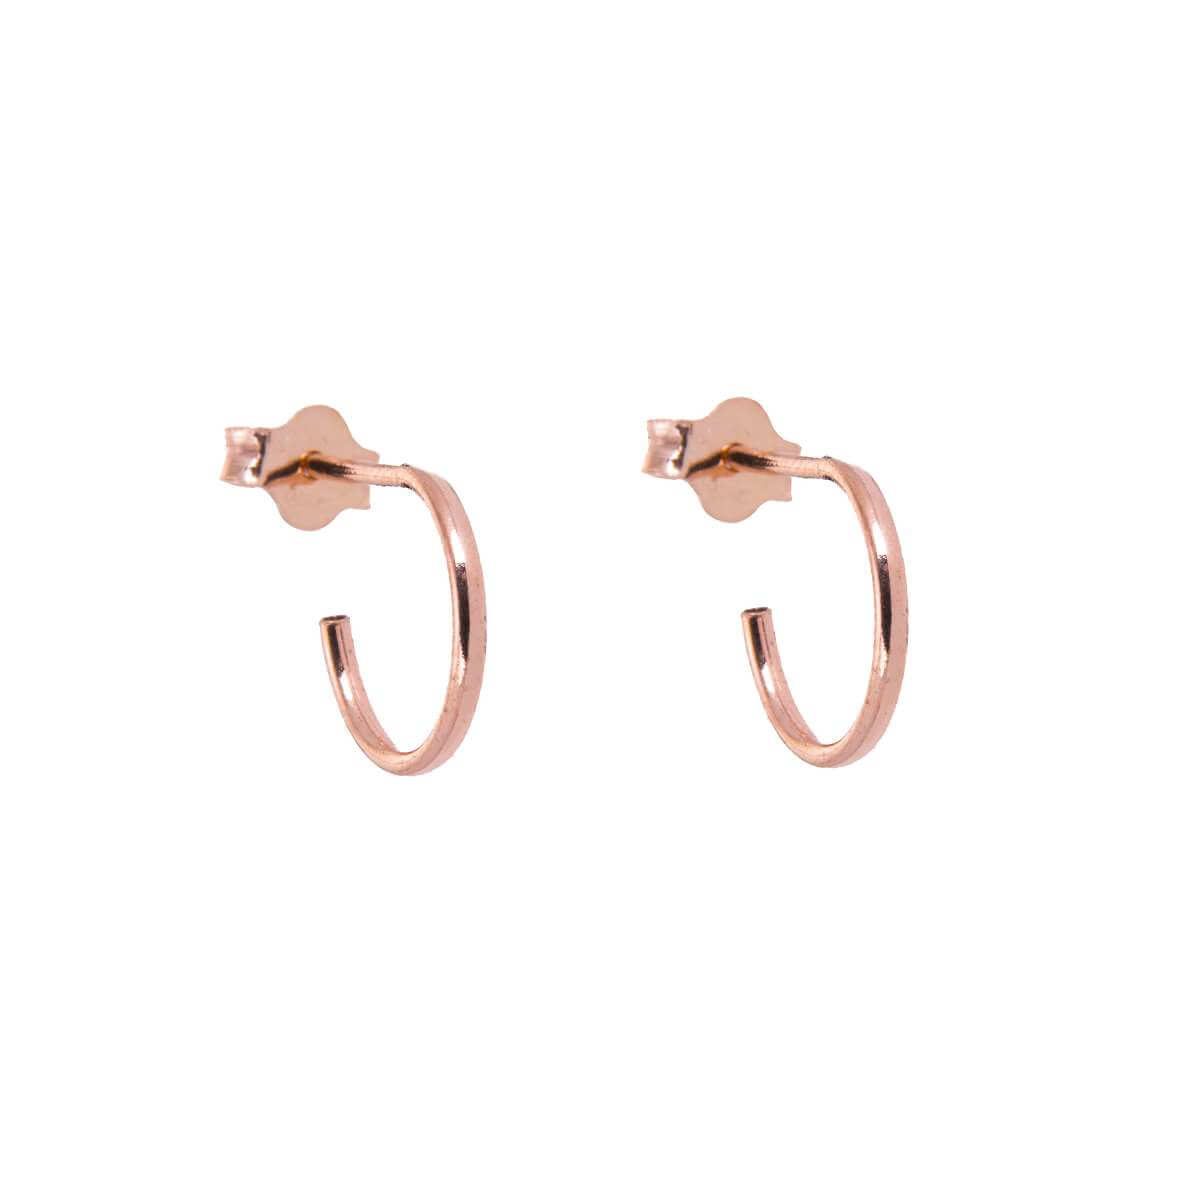 Rose Gold Plated Sterling Silver Open 10mm Hoop Stud Earrings